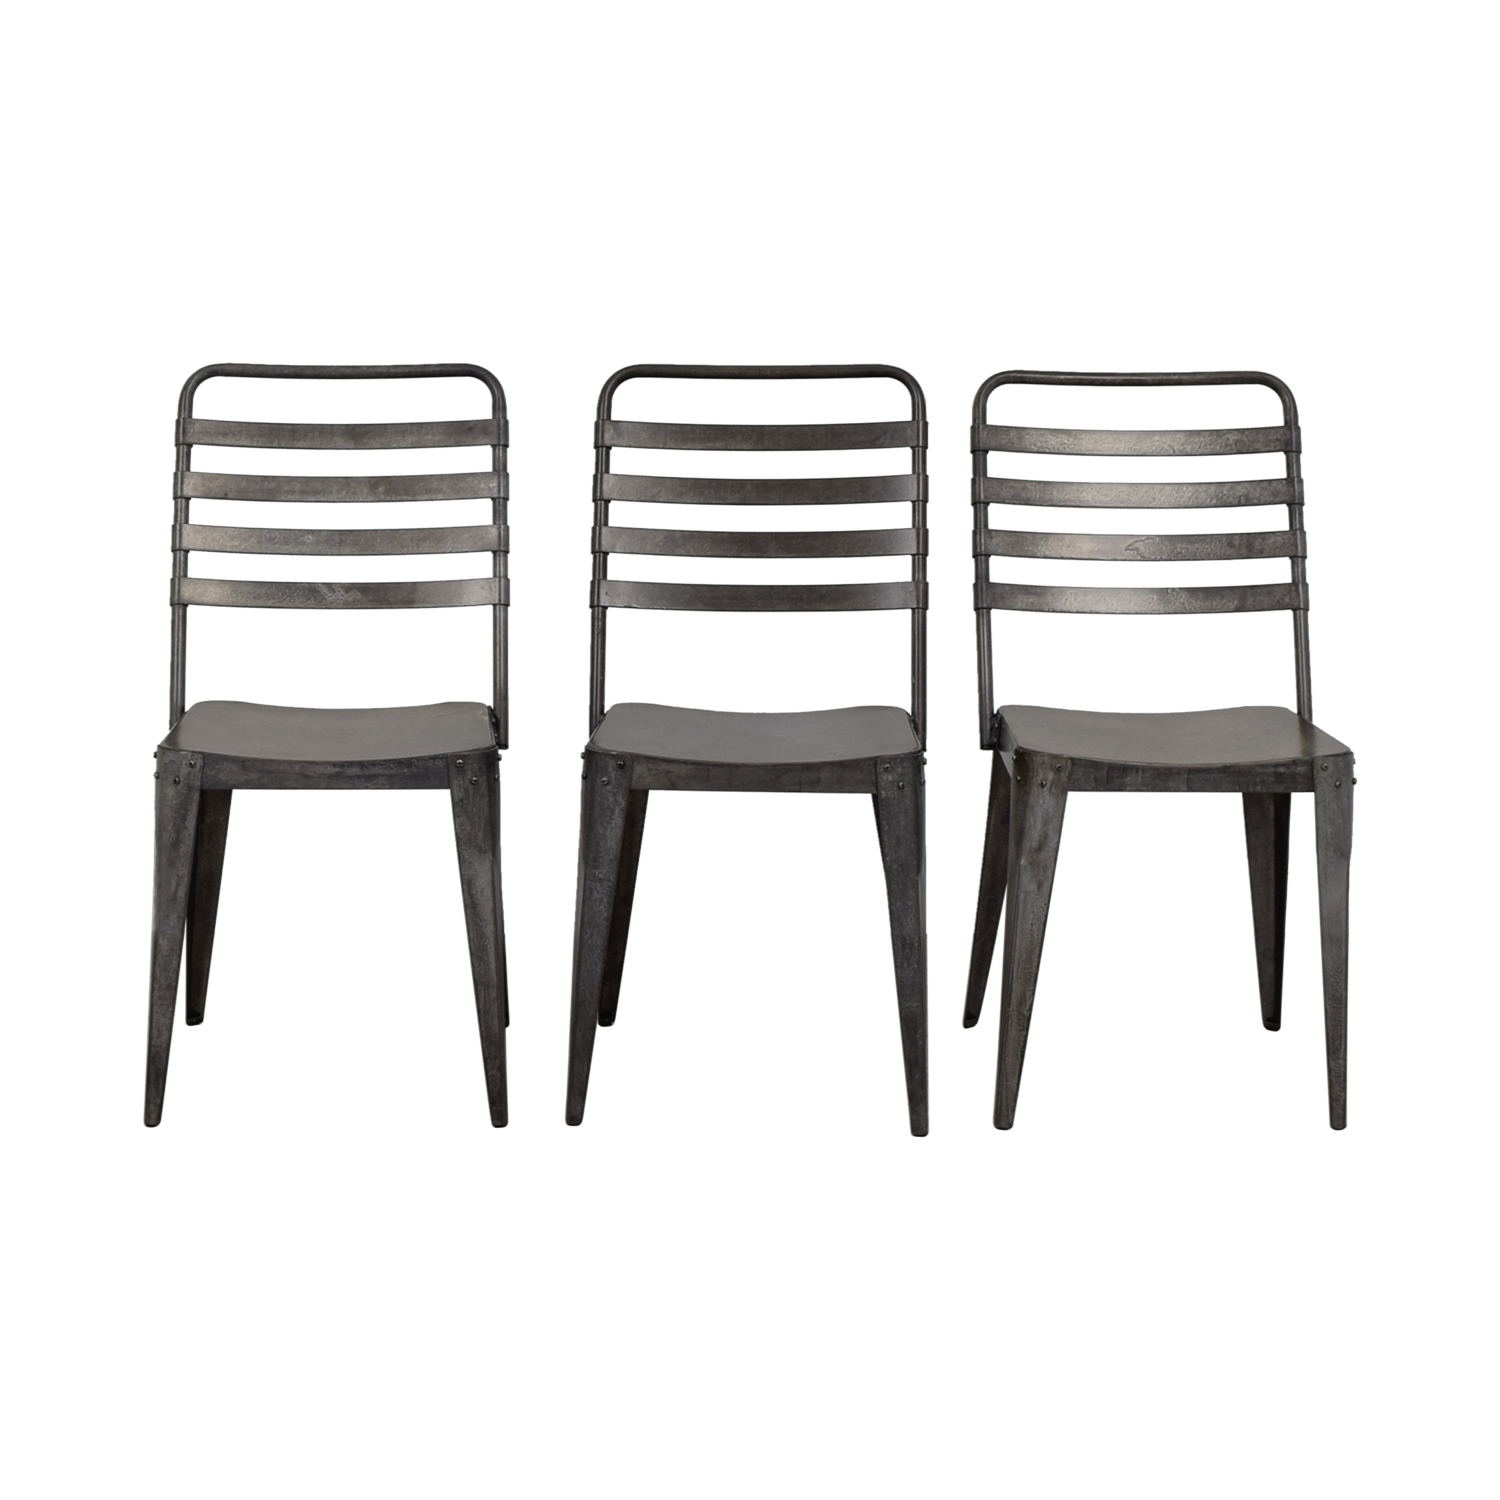 shop CB2 Metropolitan Distressed Metal Chairs CB2